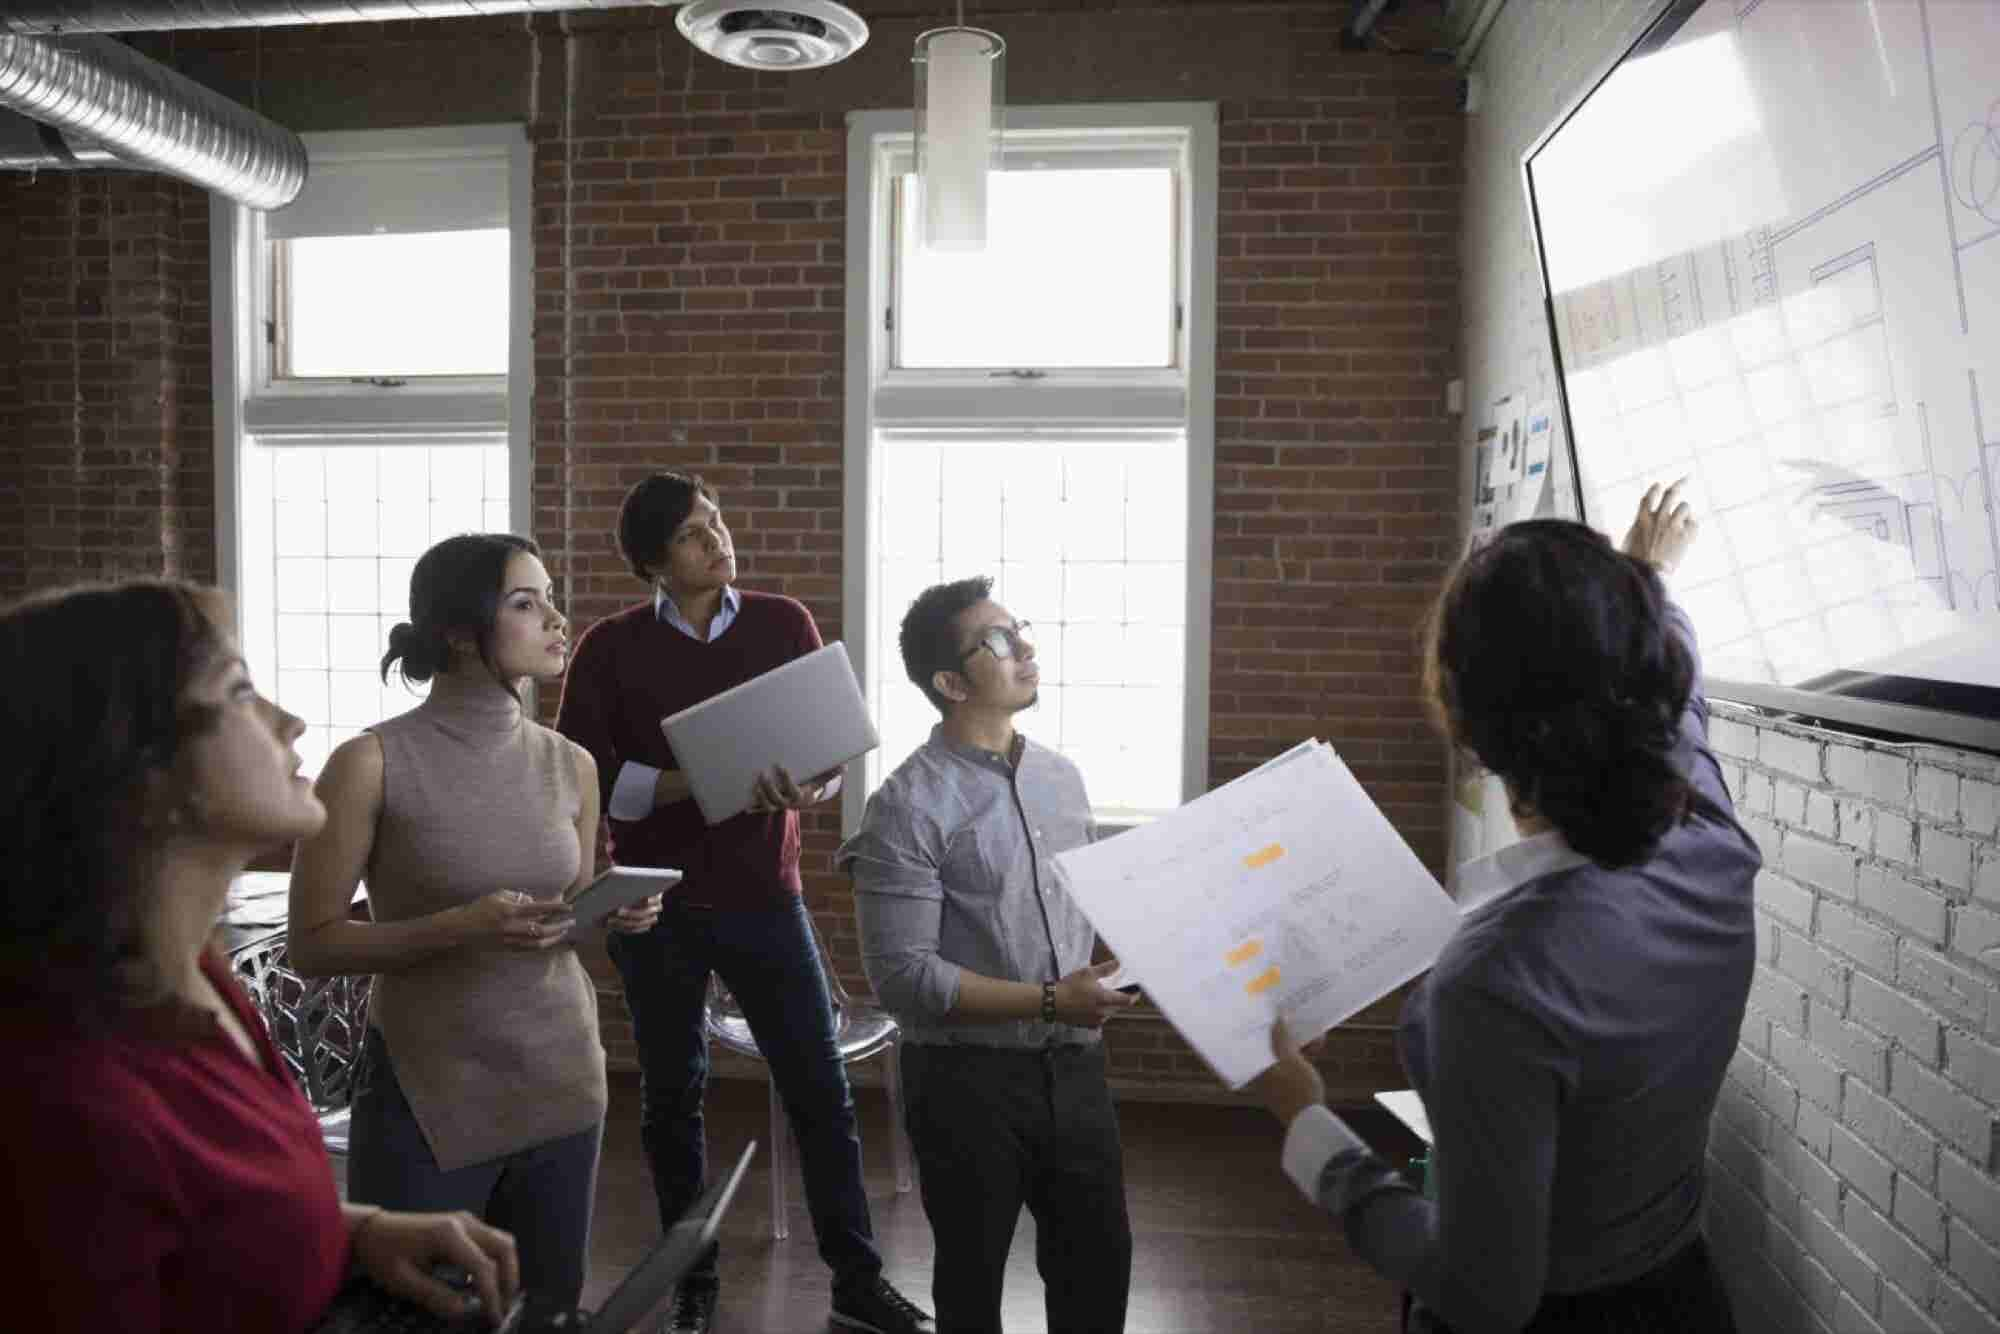 Coax Creativity Out of Your Team With These 4 Processes